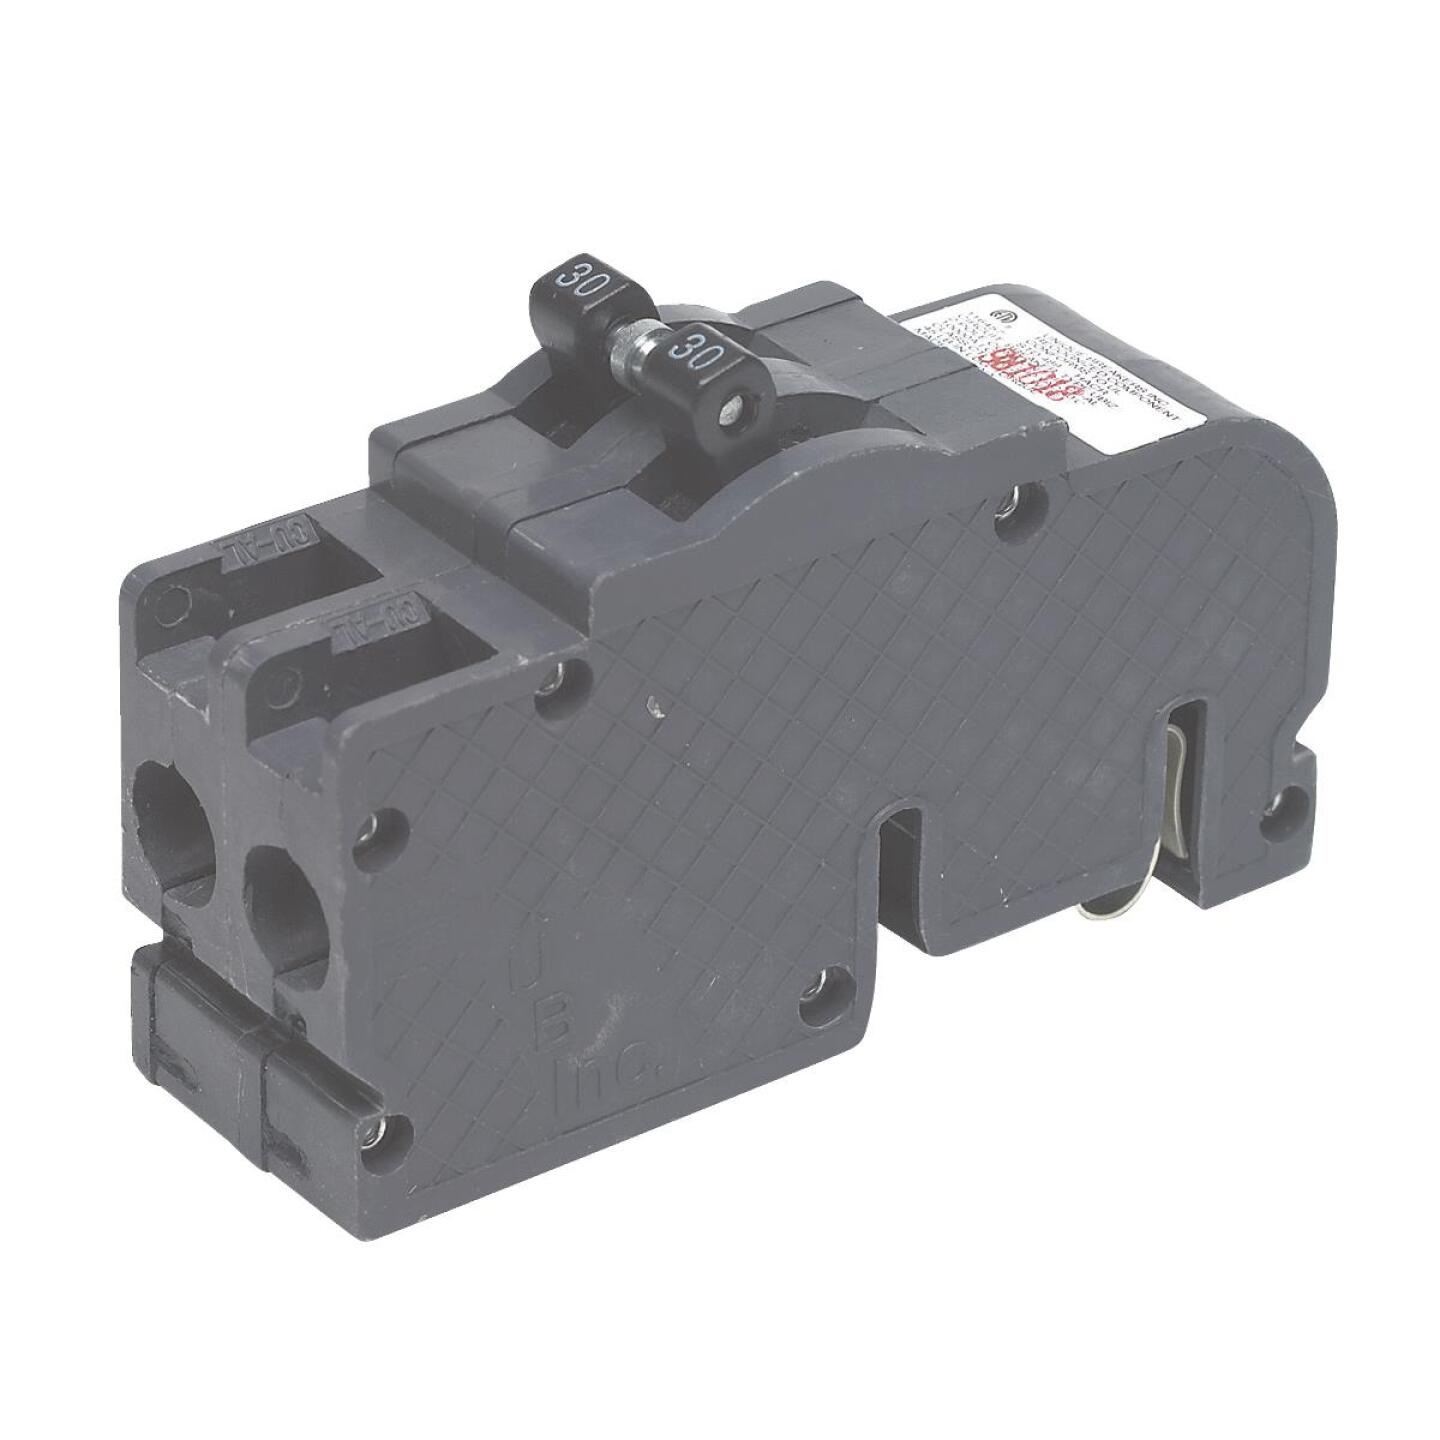 Connecticut Electric 30A Double-Pole Standard Trip Packaged Replacement Circuit Breaker For Zinsco Image 1